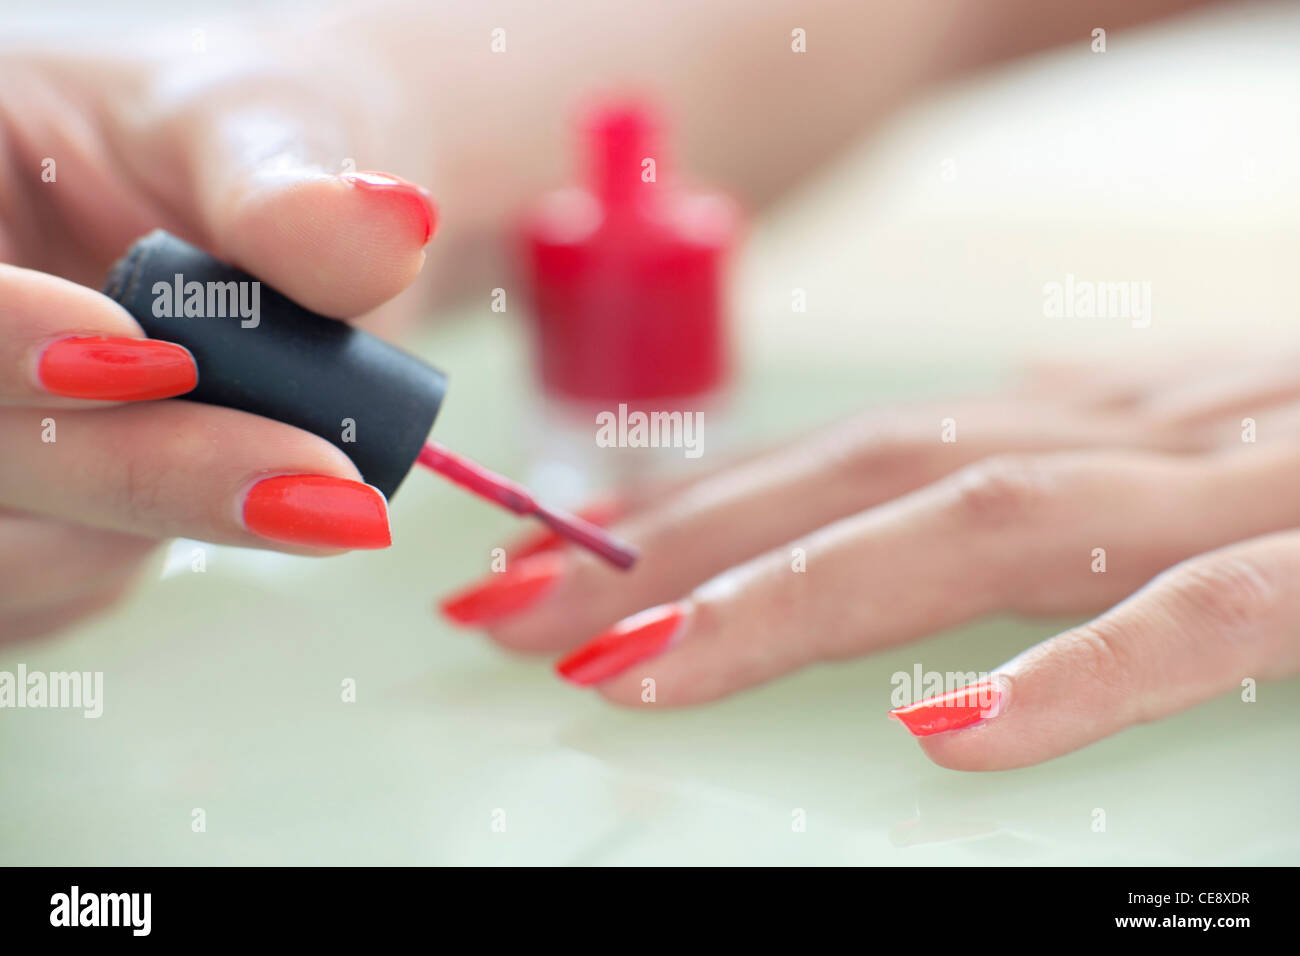 MODEL RELEASED. Woman painting her nails. - Stock Image